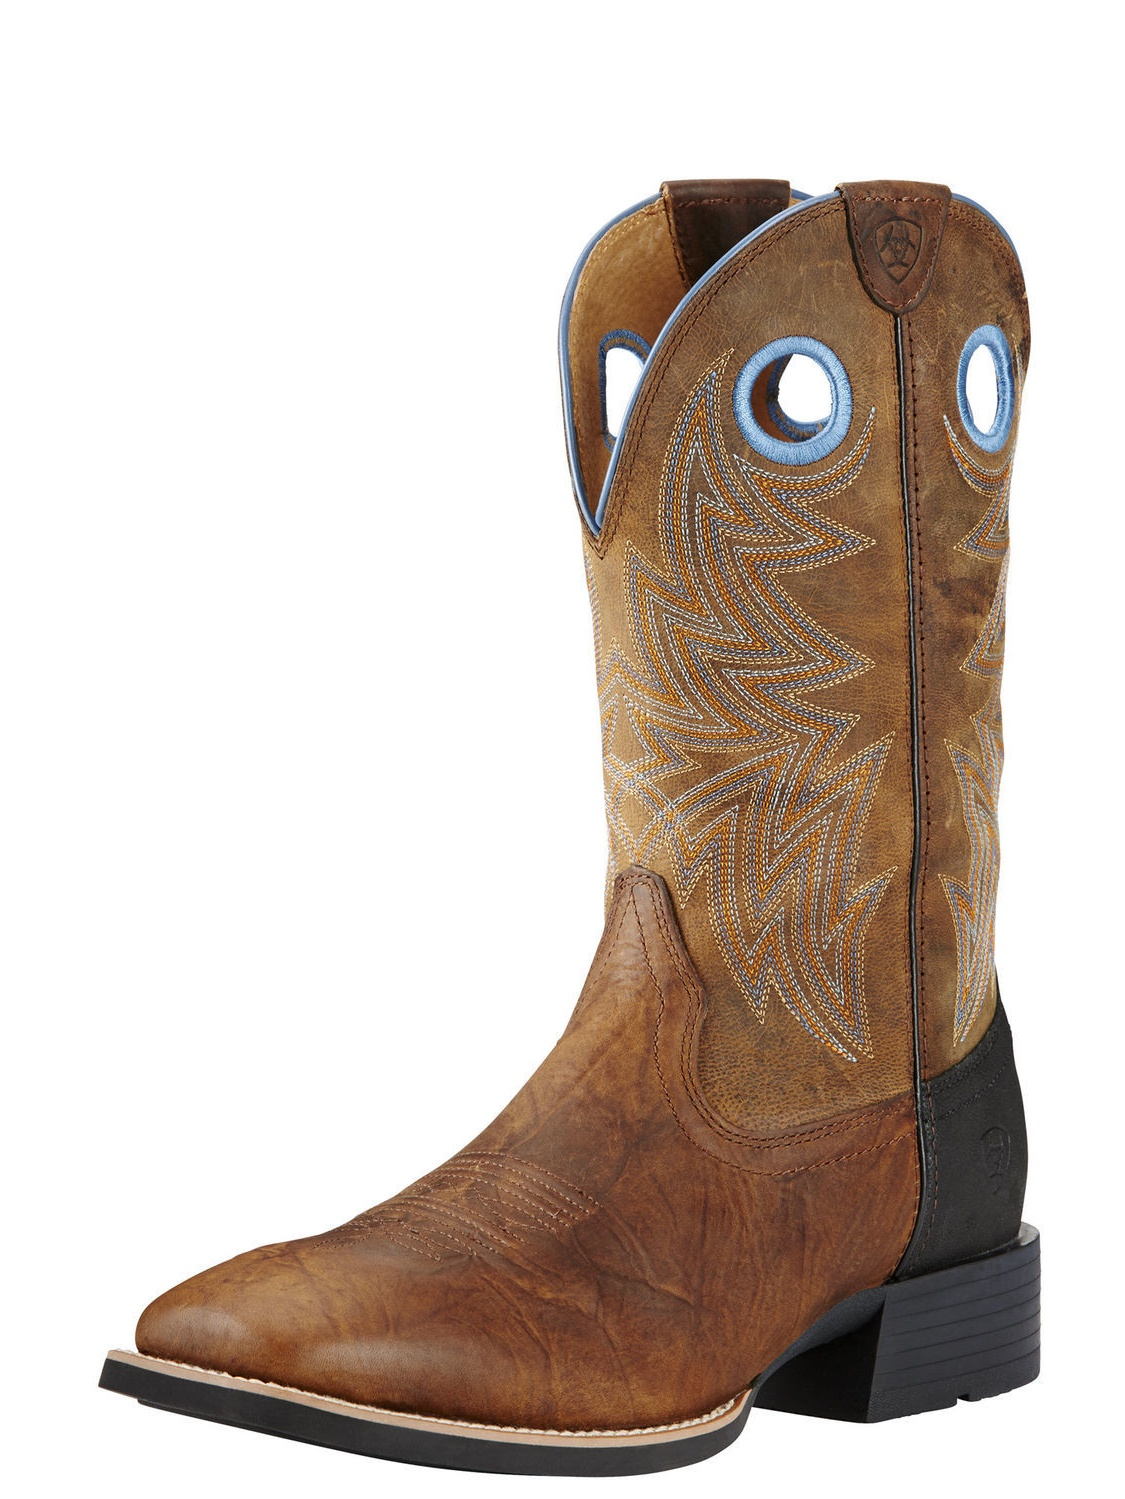 Ariat Heritage Cowhorse Pointed Toe Leather Western Boot by Ariat